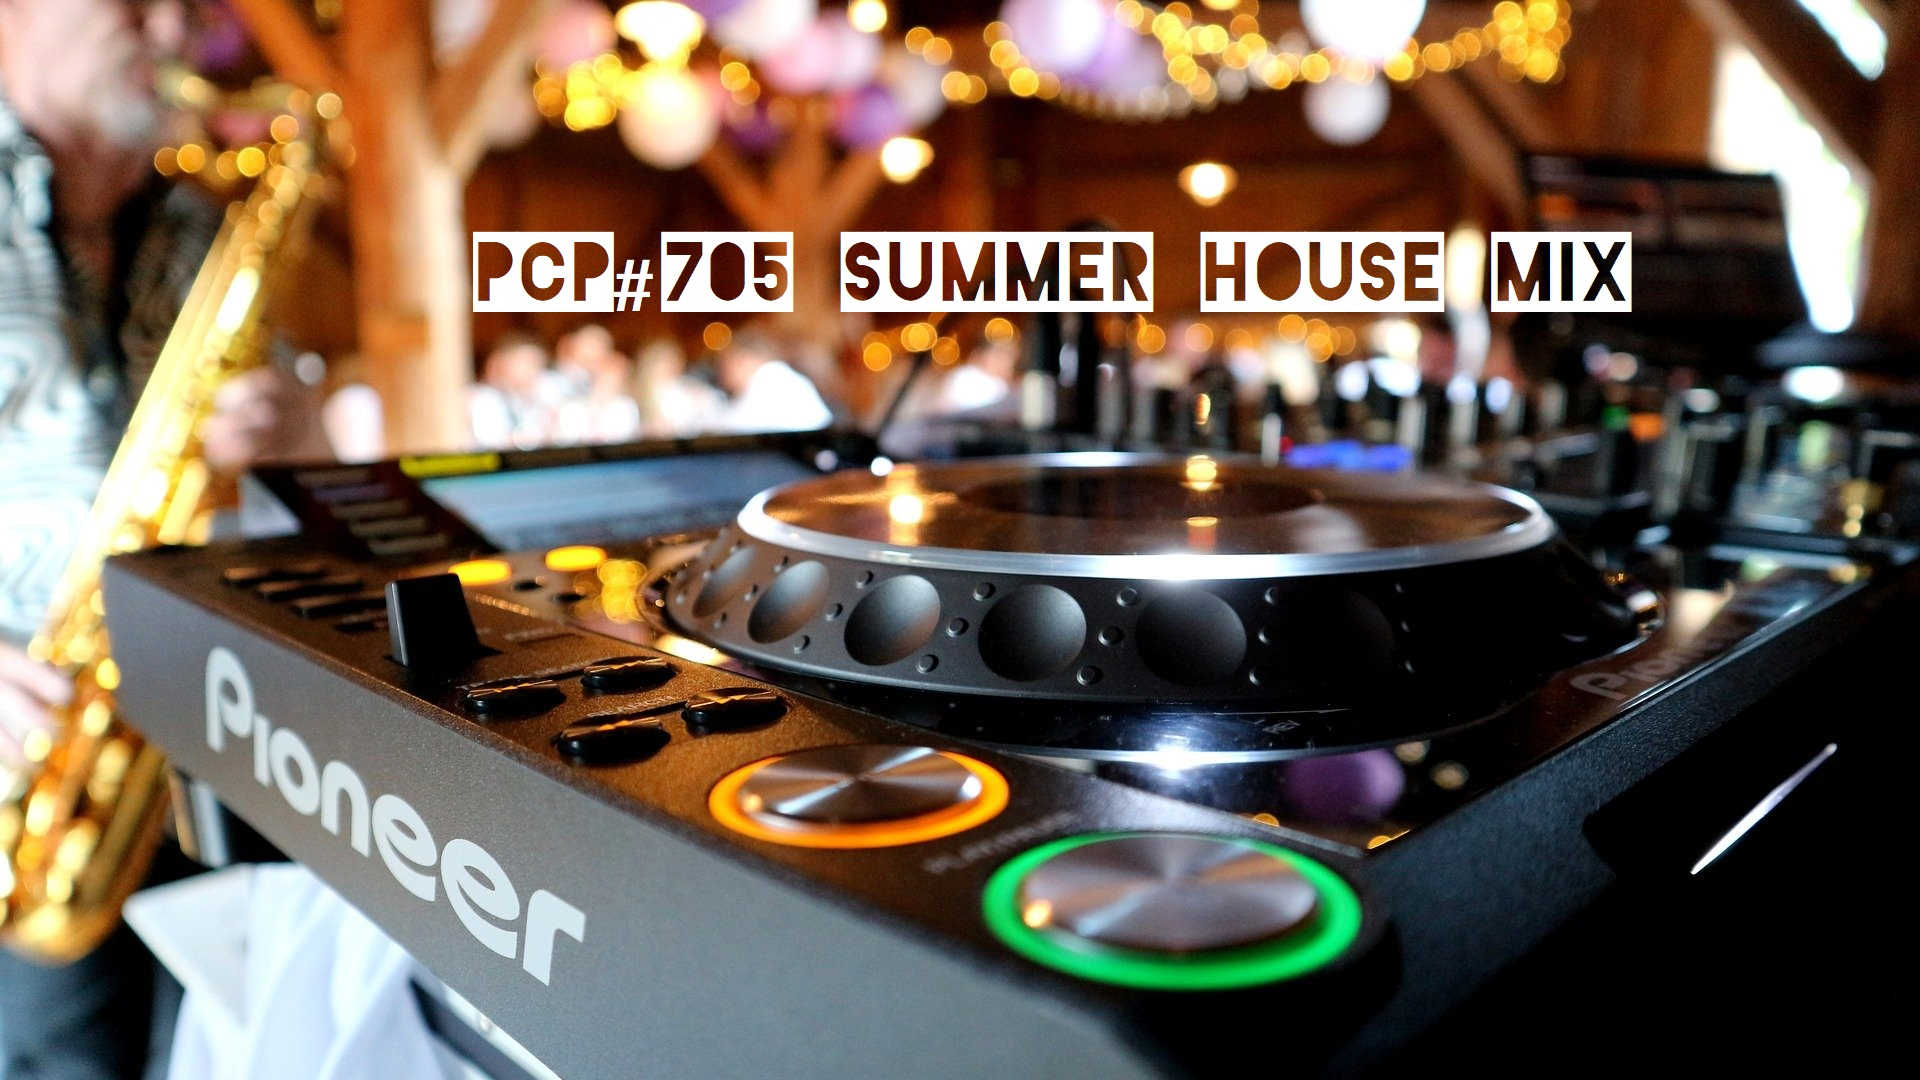 PCP#705... Summer House Mix.....